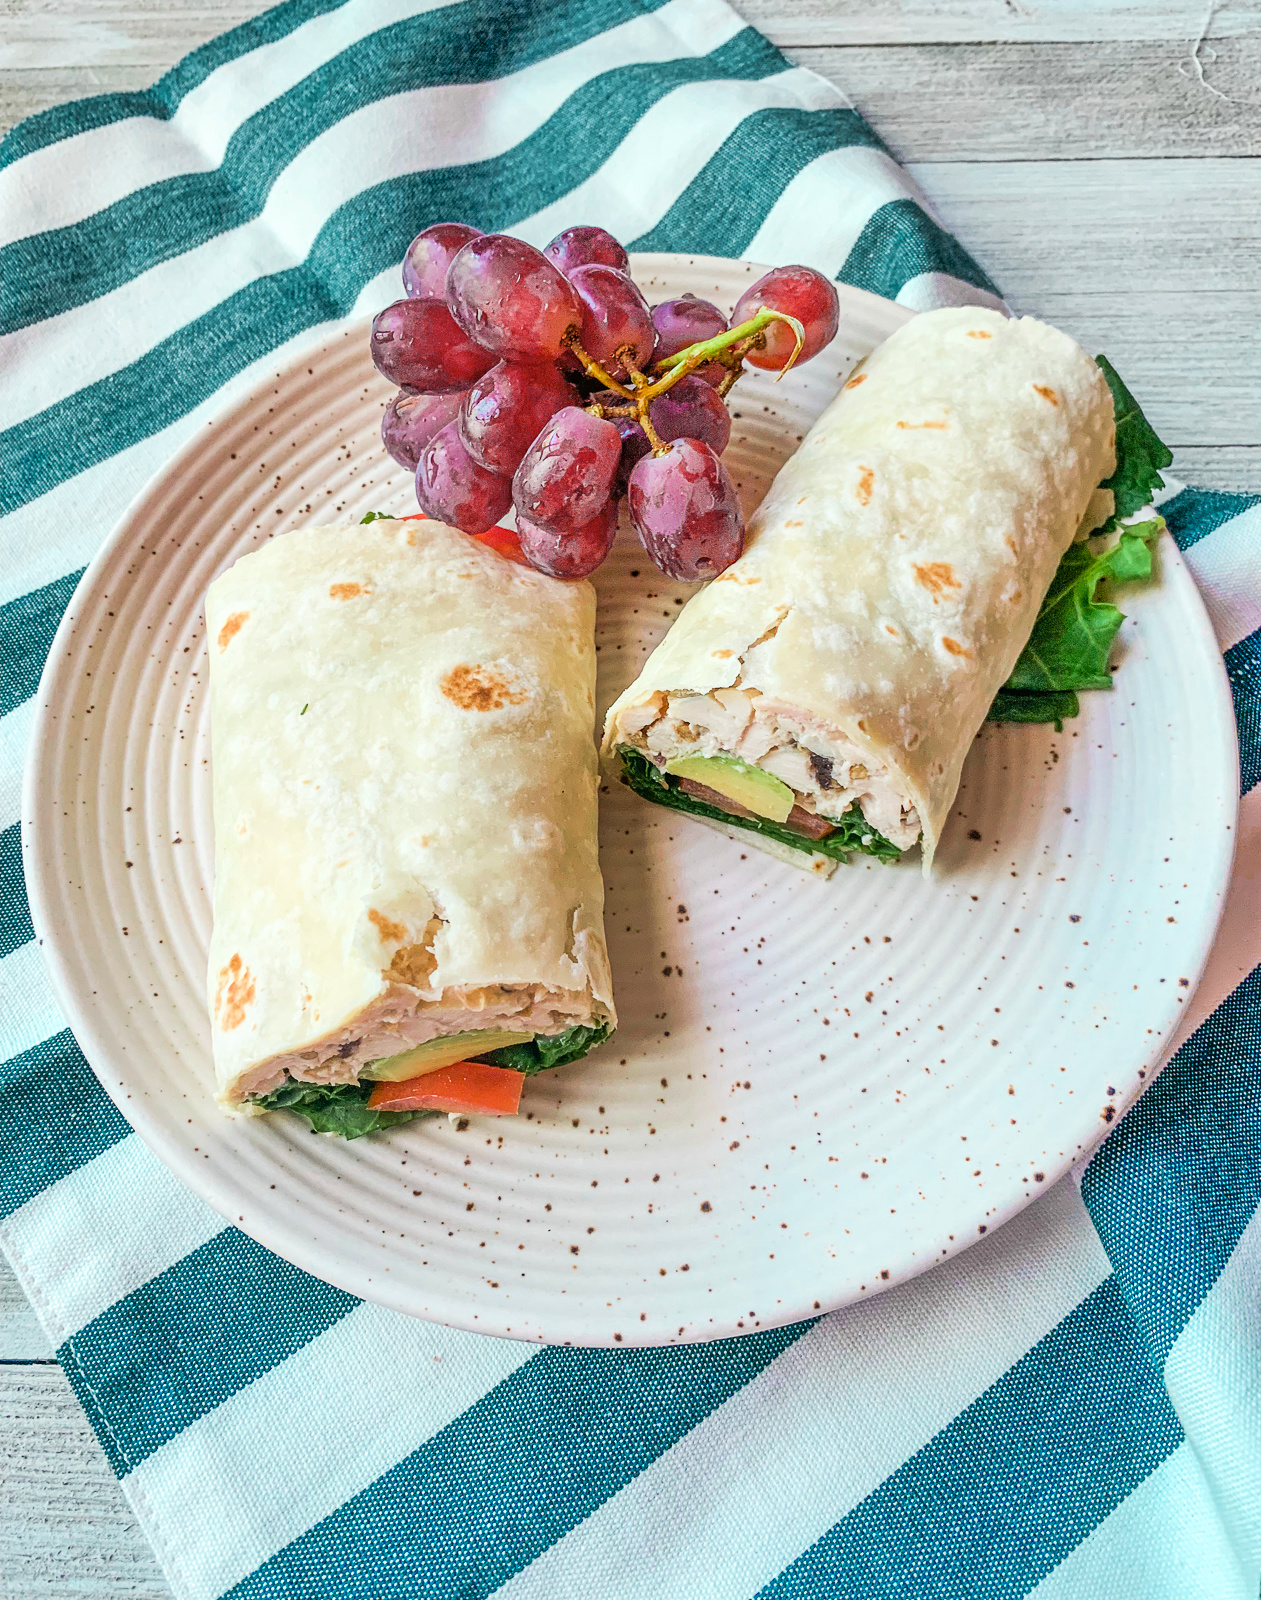 dairy-free chicken salad wrap with gluten free tortilla